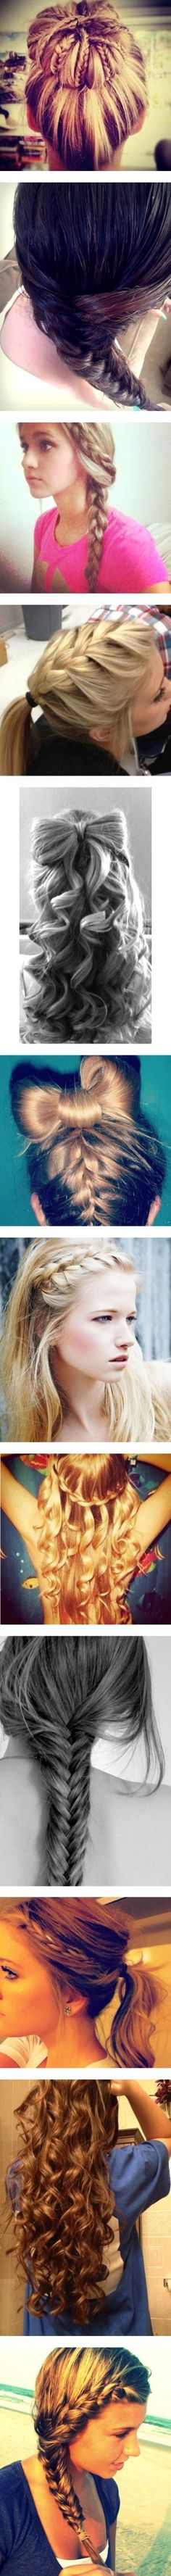 Fun hairstyles to try